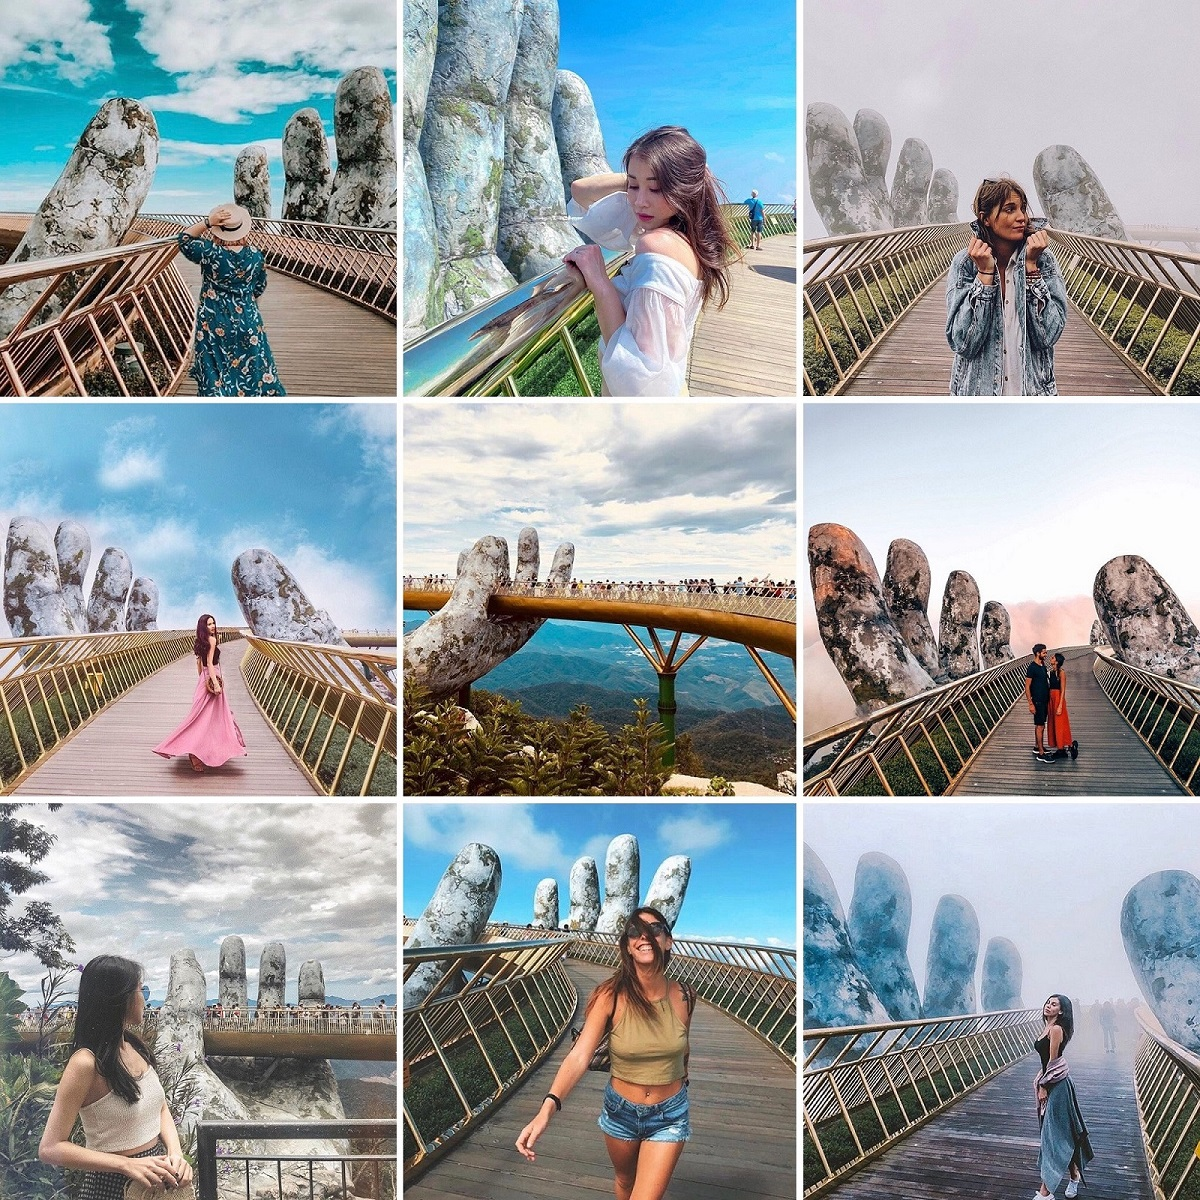 a hundreds of pictures of every angle of the bridge